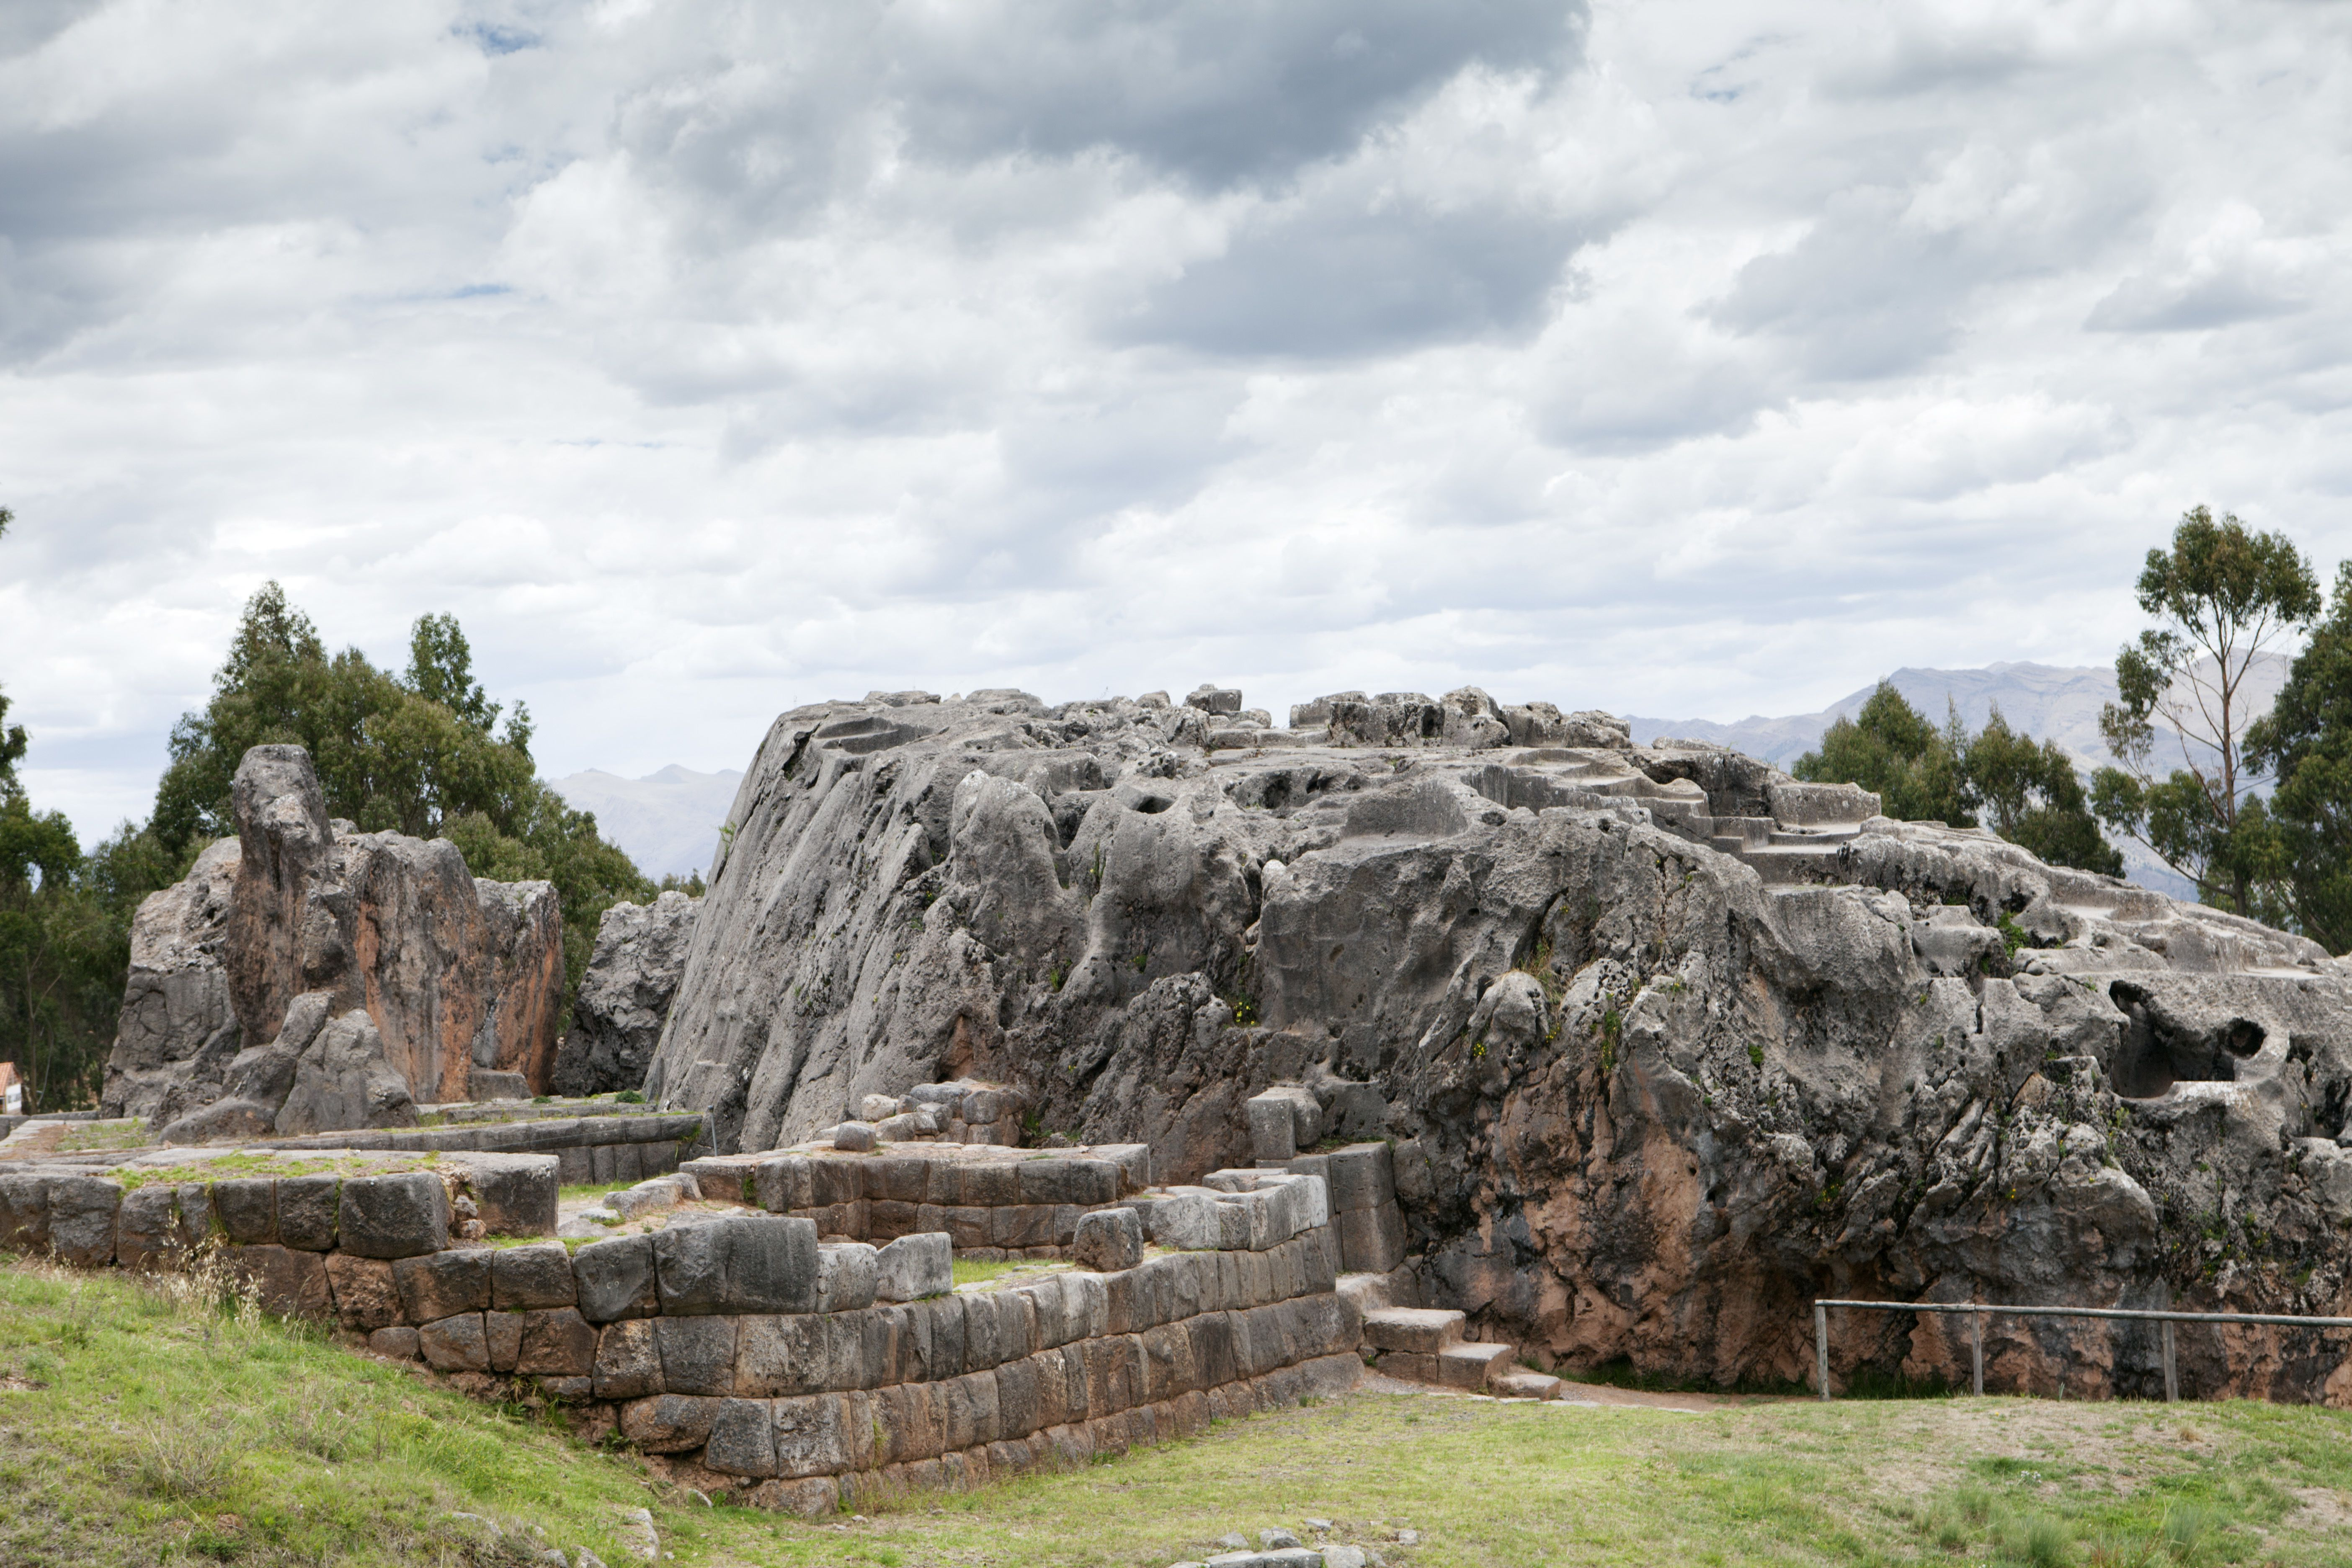 The Inca ceremonial and sacred site of Qenqo near the UNESCO World Heritage listed former Inca capital of Cusco